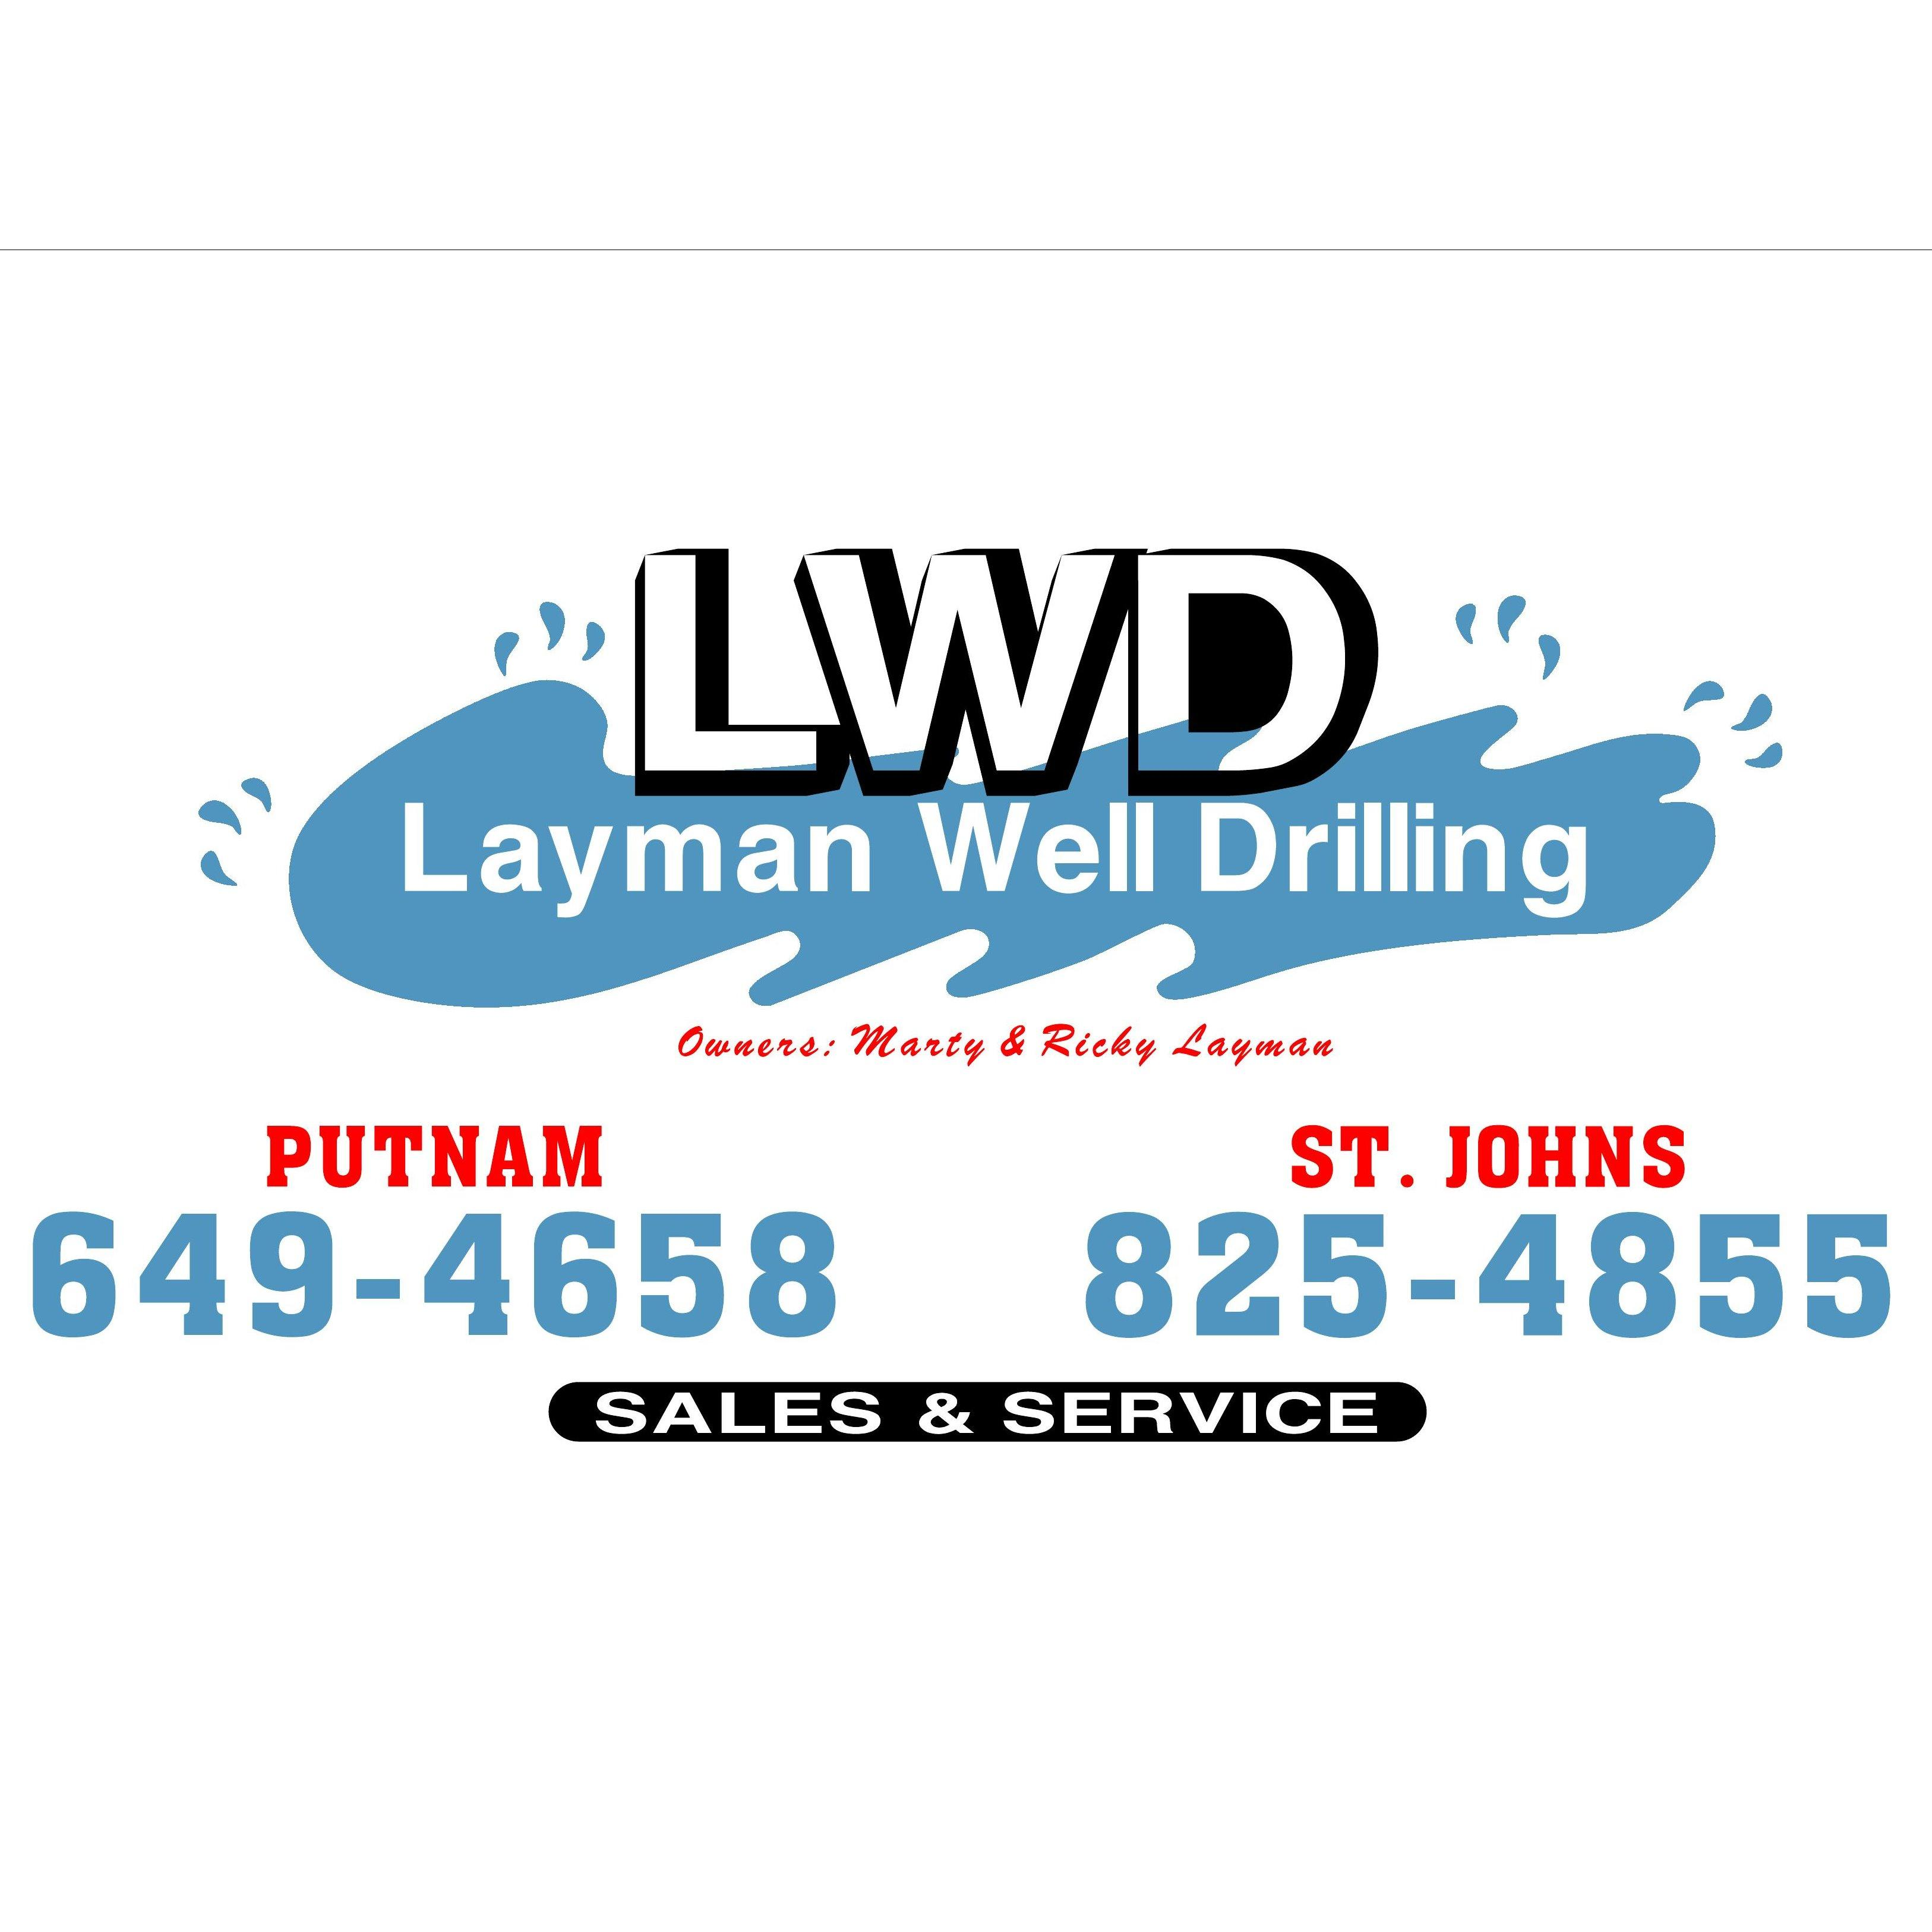 Layman Well Drilling image 4